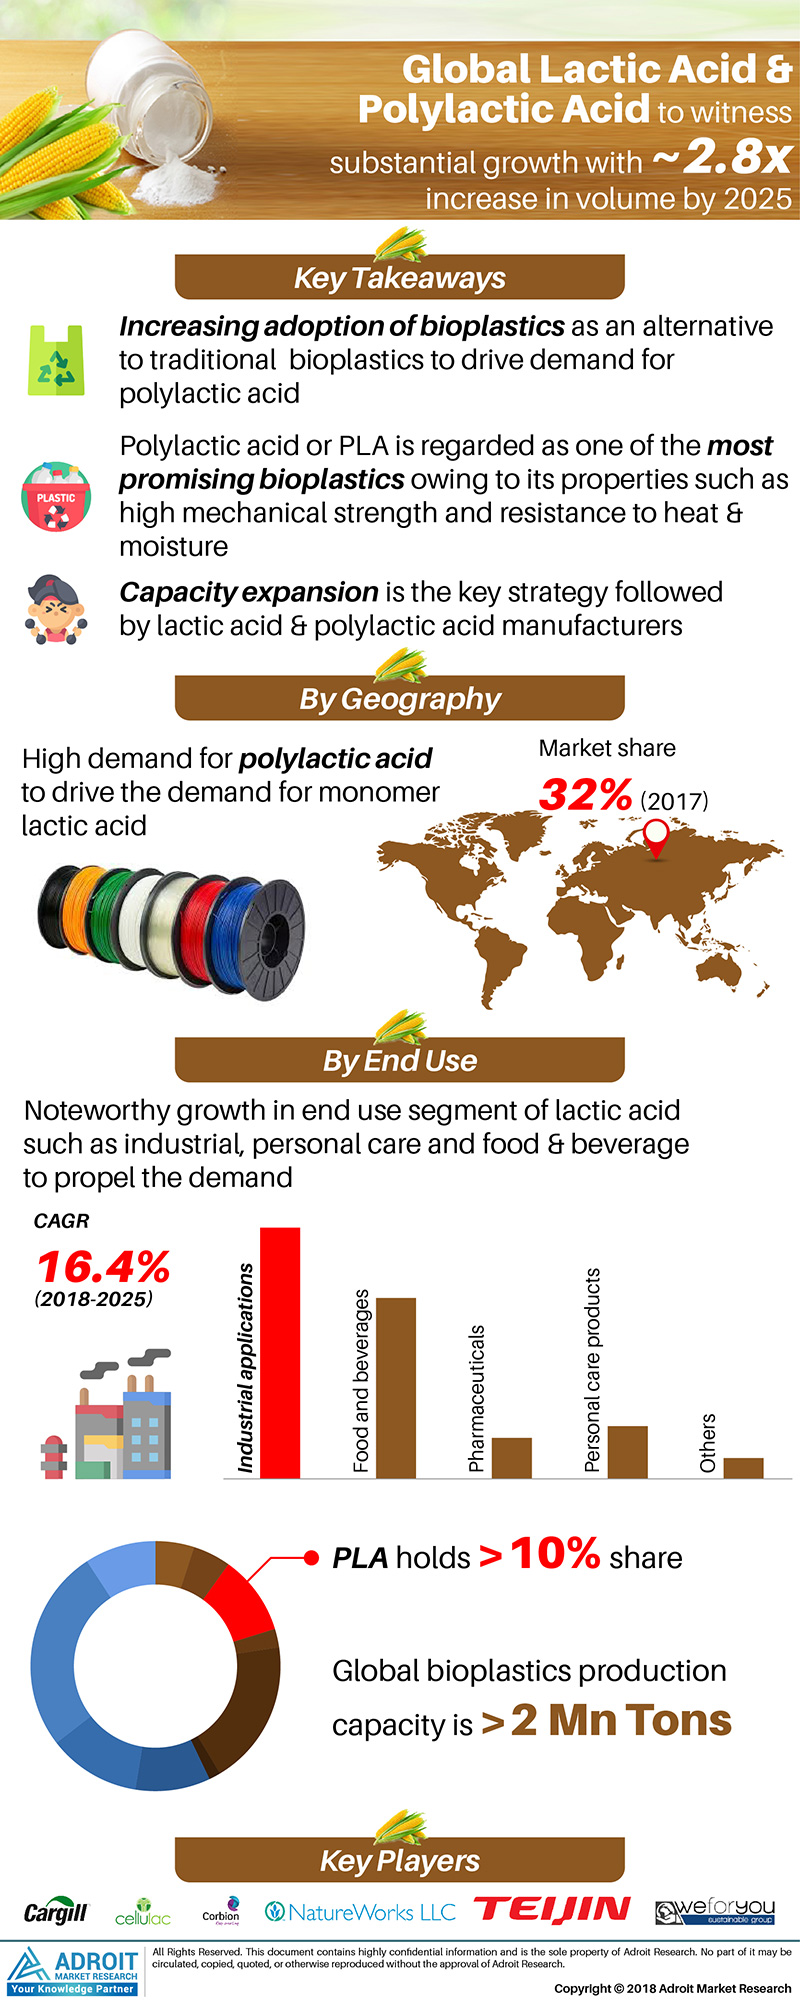 Global Lactic Acid and Polylactic Acid Market Size 2017 By End-Use, Region and Forecast 2018 to 2025